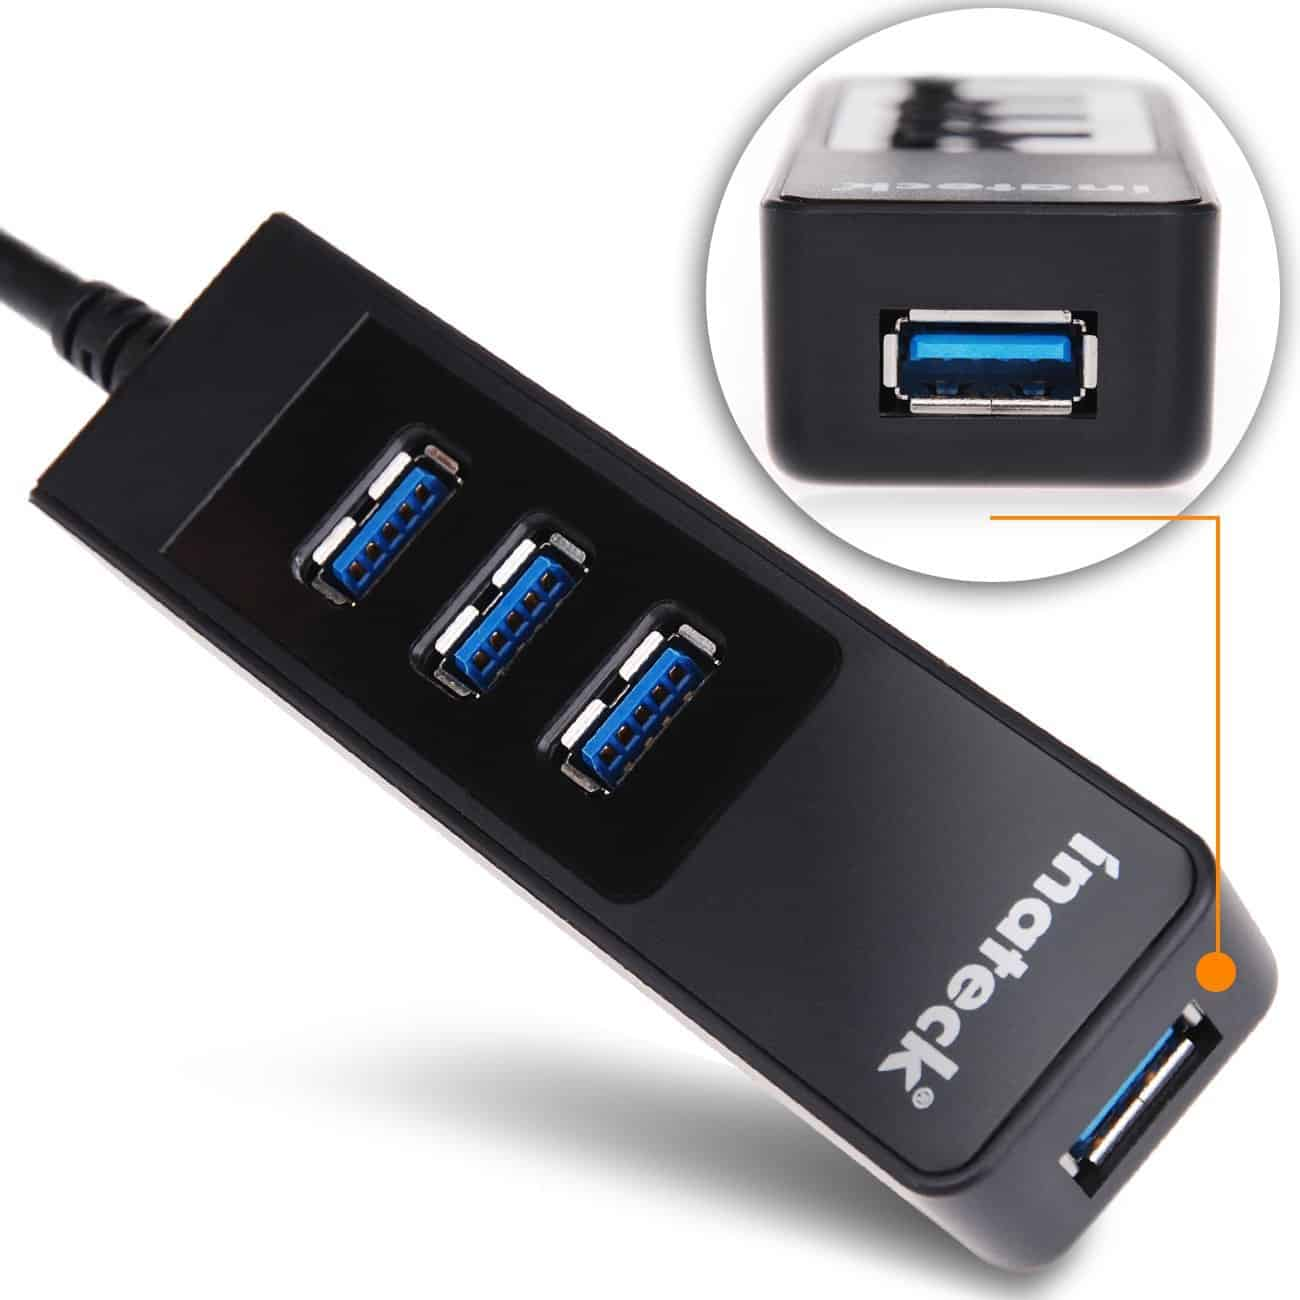 Inateck USB 3.0 4 Port Hub Review